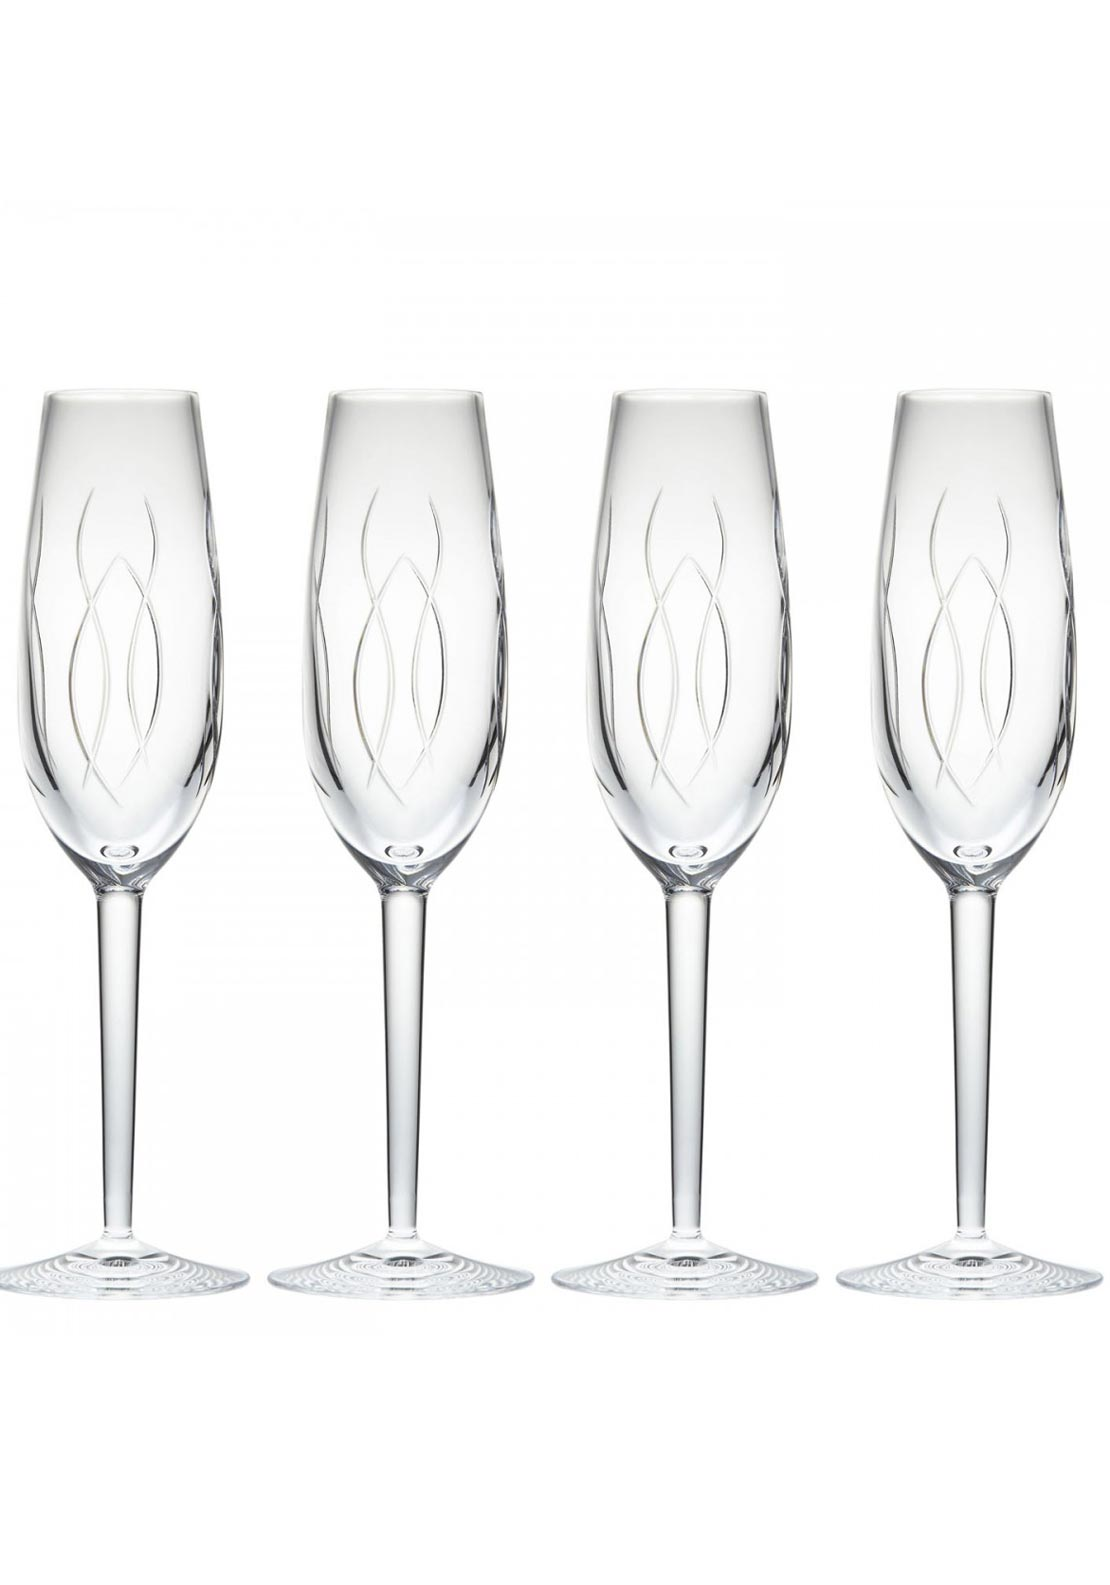 John Rocha at Waterford Weft Flute Glasses, Set of 4